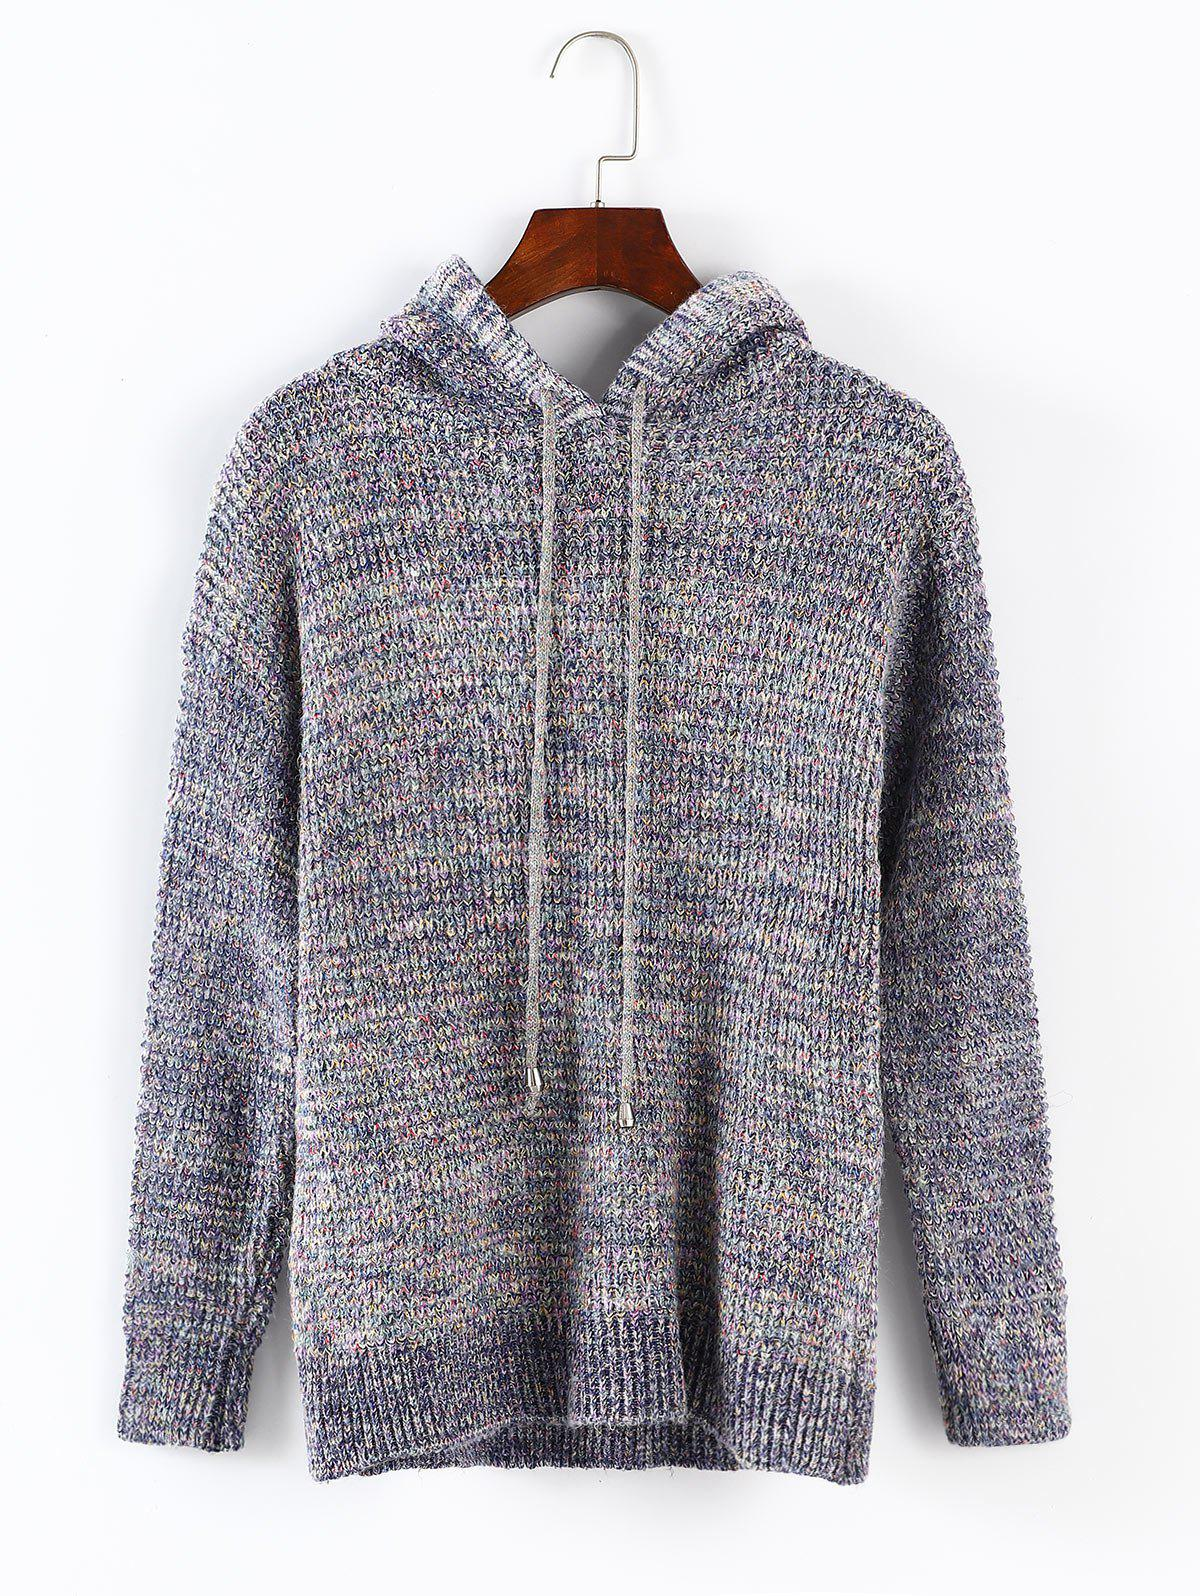 Hooded Drawstring Pullover Sweater, Multi